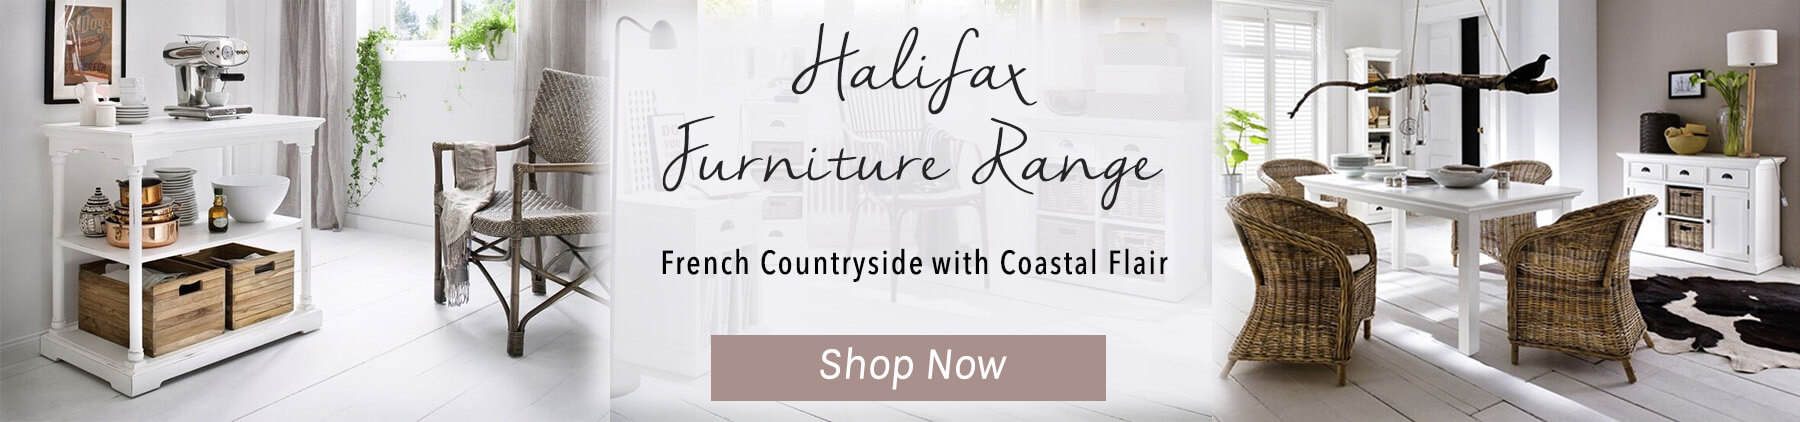 Shop through our range of Halifax Furniture